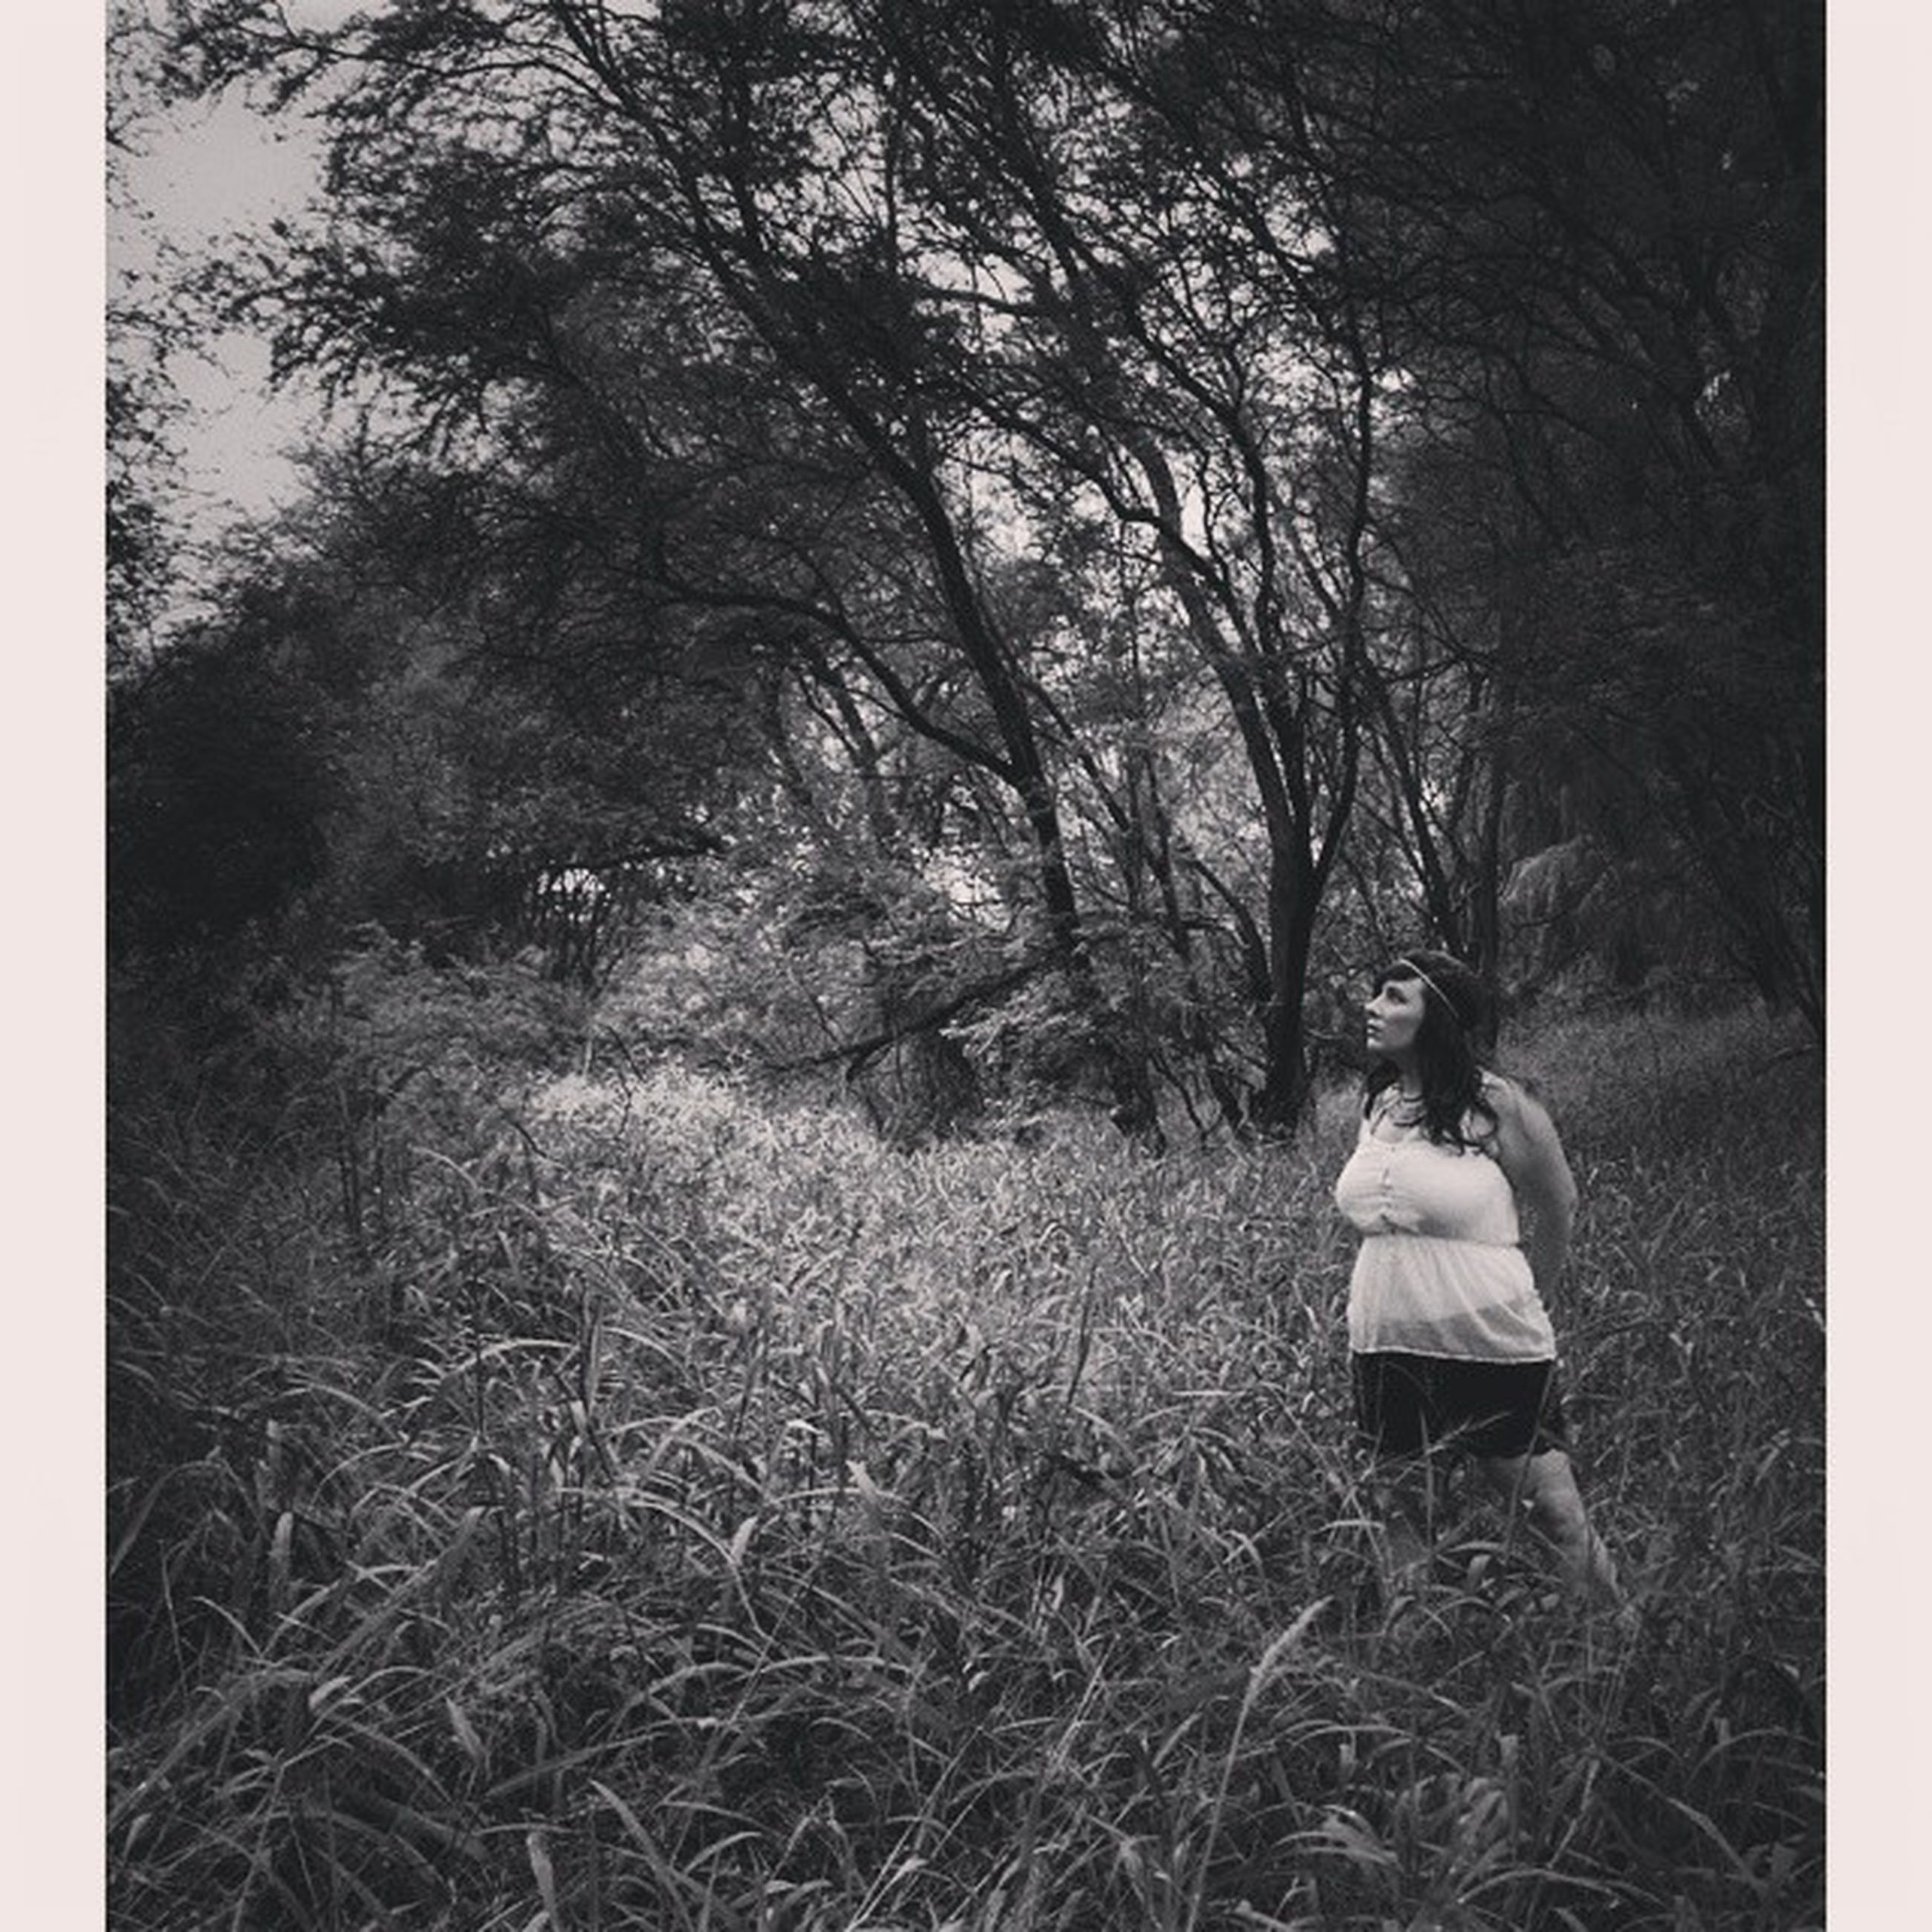 grass, tree, field, lifestyles, rear view, leisure activity, full length, bare tree, tranquility, childhood, standing, growth, nature, landscape, tree trunk, casual clothing, day, grassy